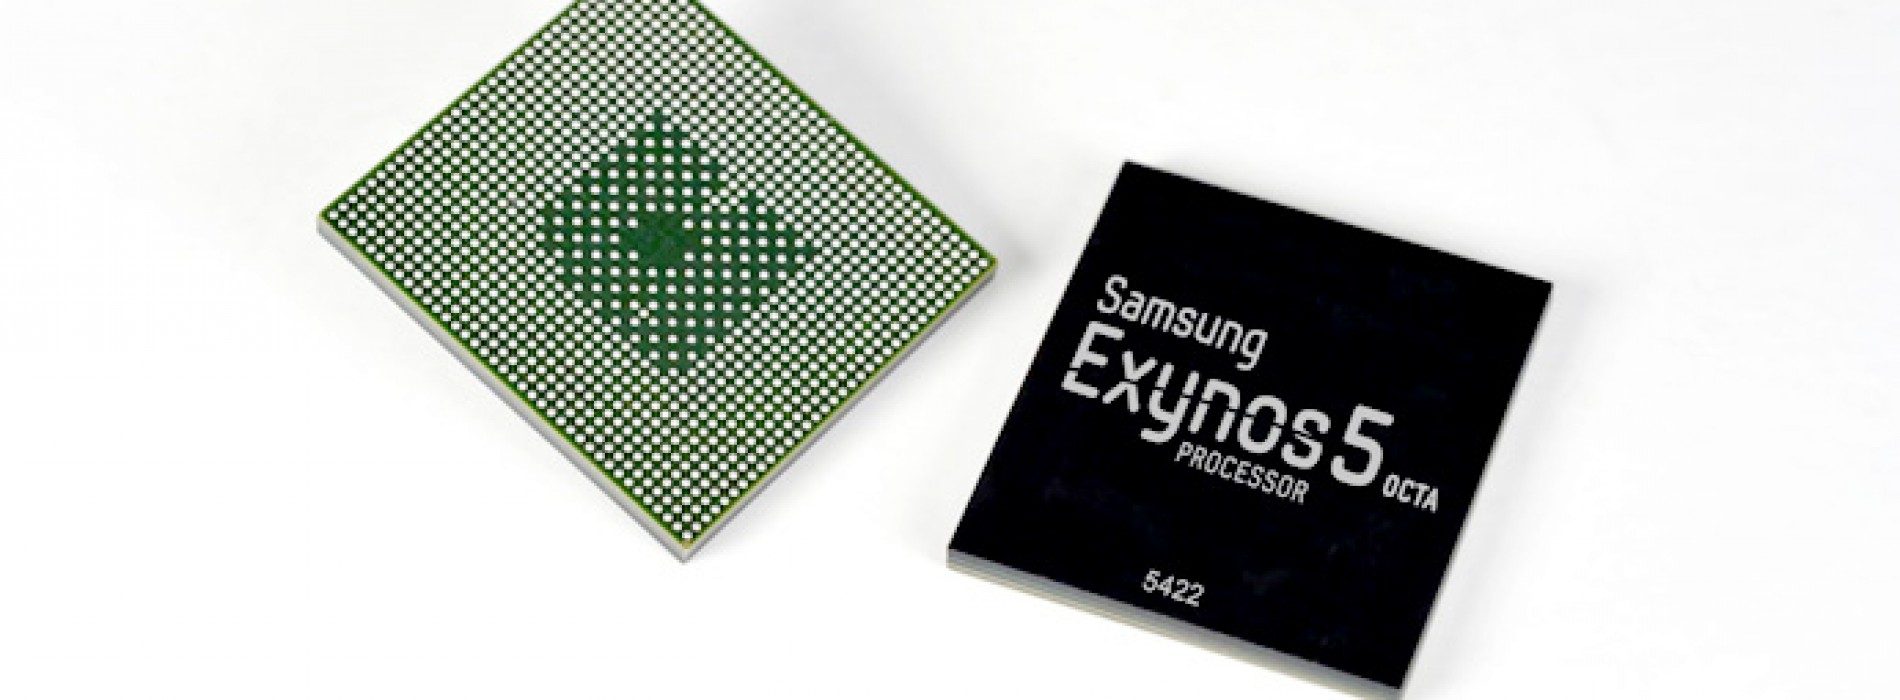 Samsung trots out two new Exynos processors